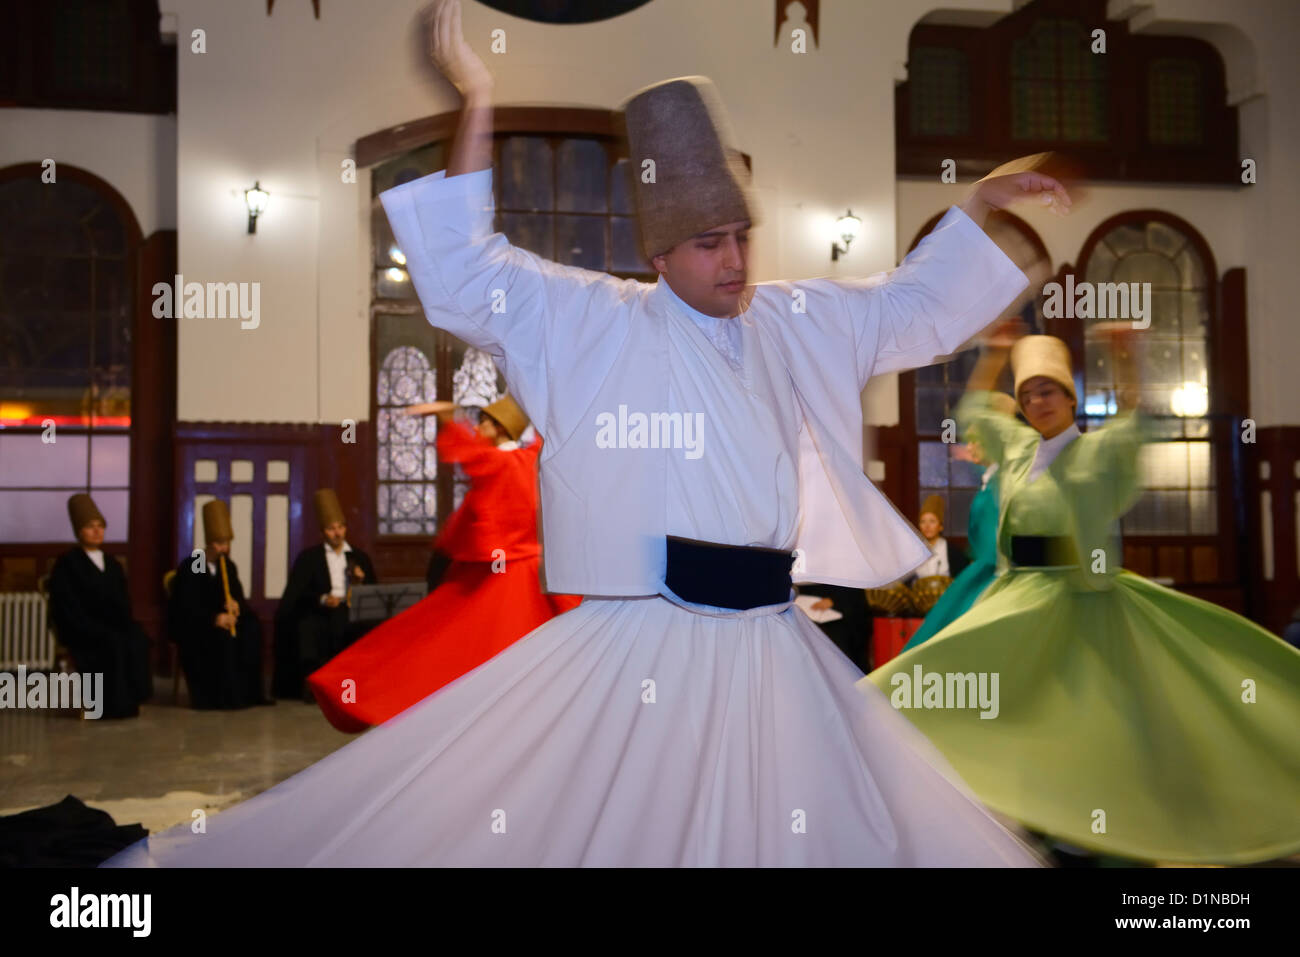 Male Sufi Whirling Dervish in a Sema Ceremony with musicians and women at Istanbul train station Turkey - Stock Image